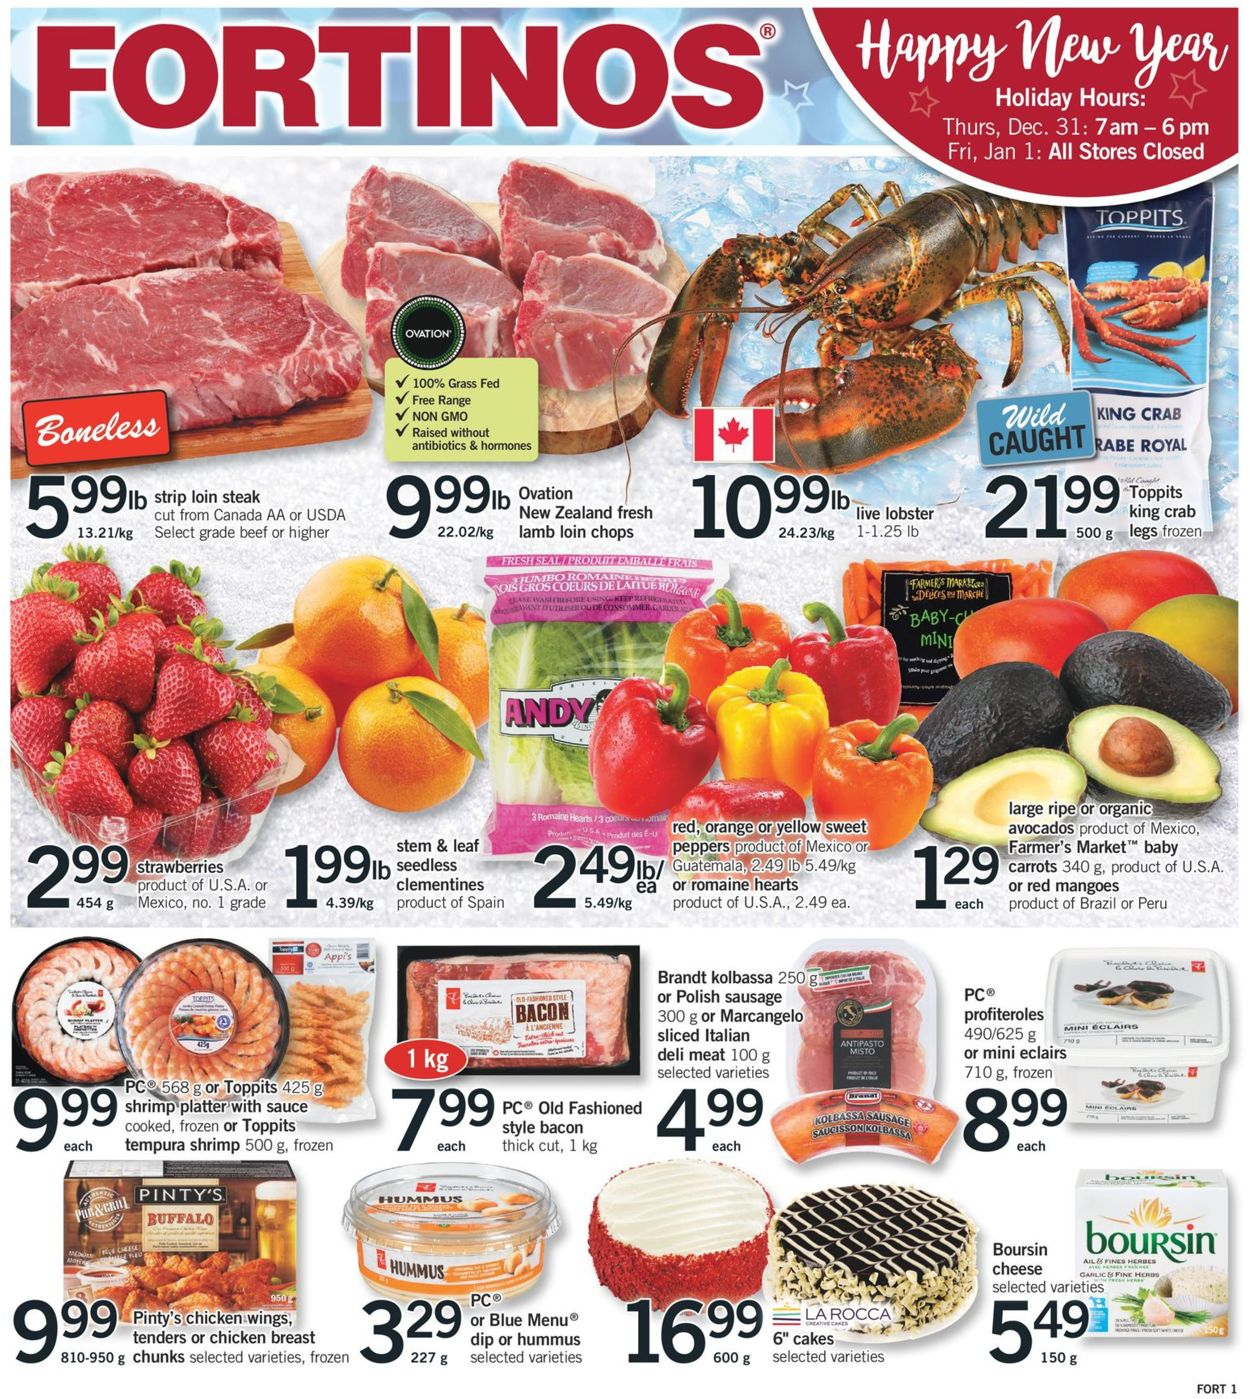 Fortinos - New Year 2021 Flyer - 12/31-01/06/2021